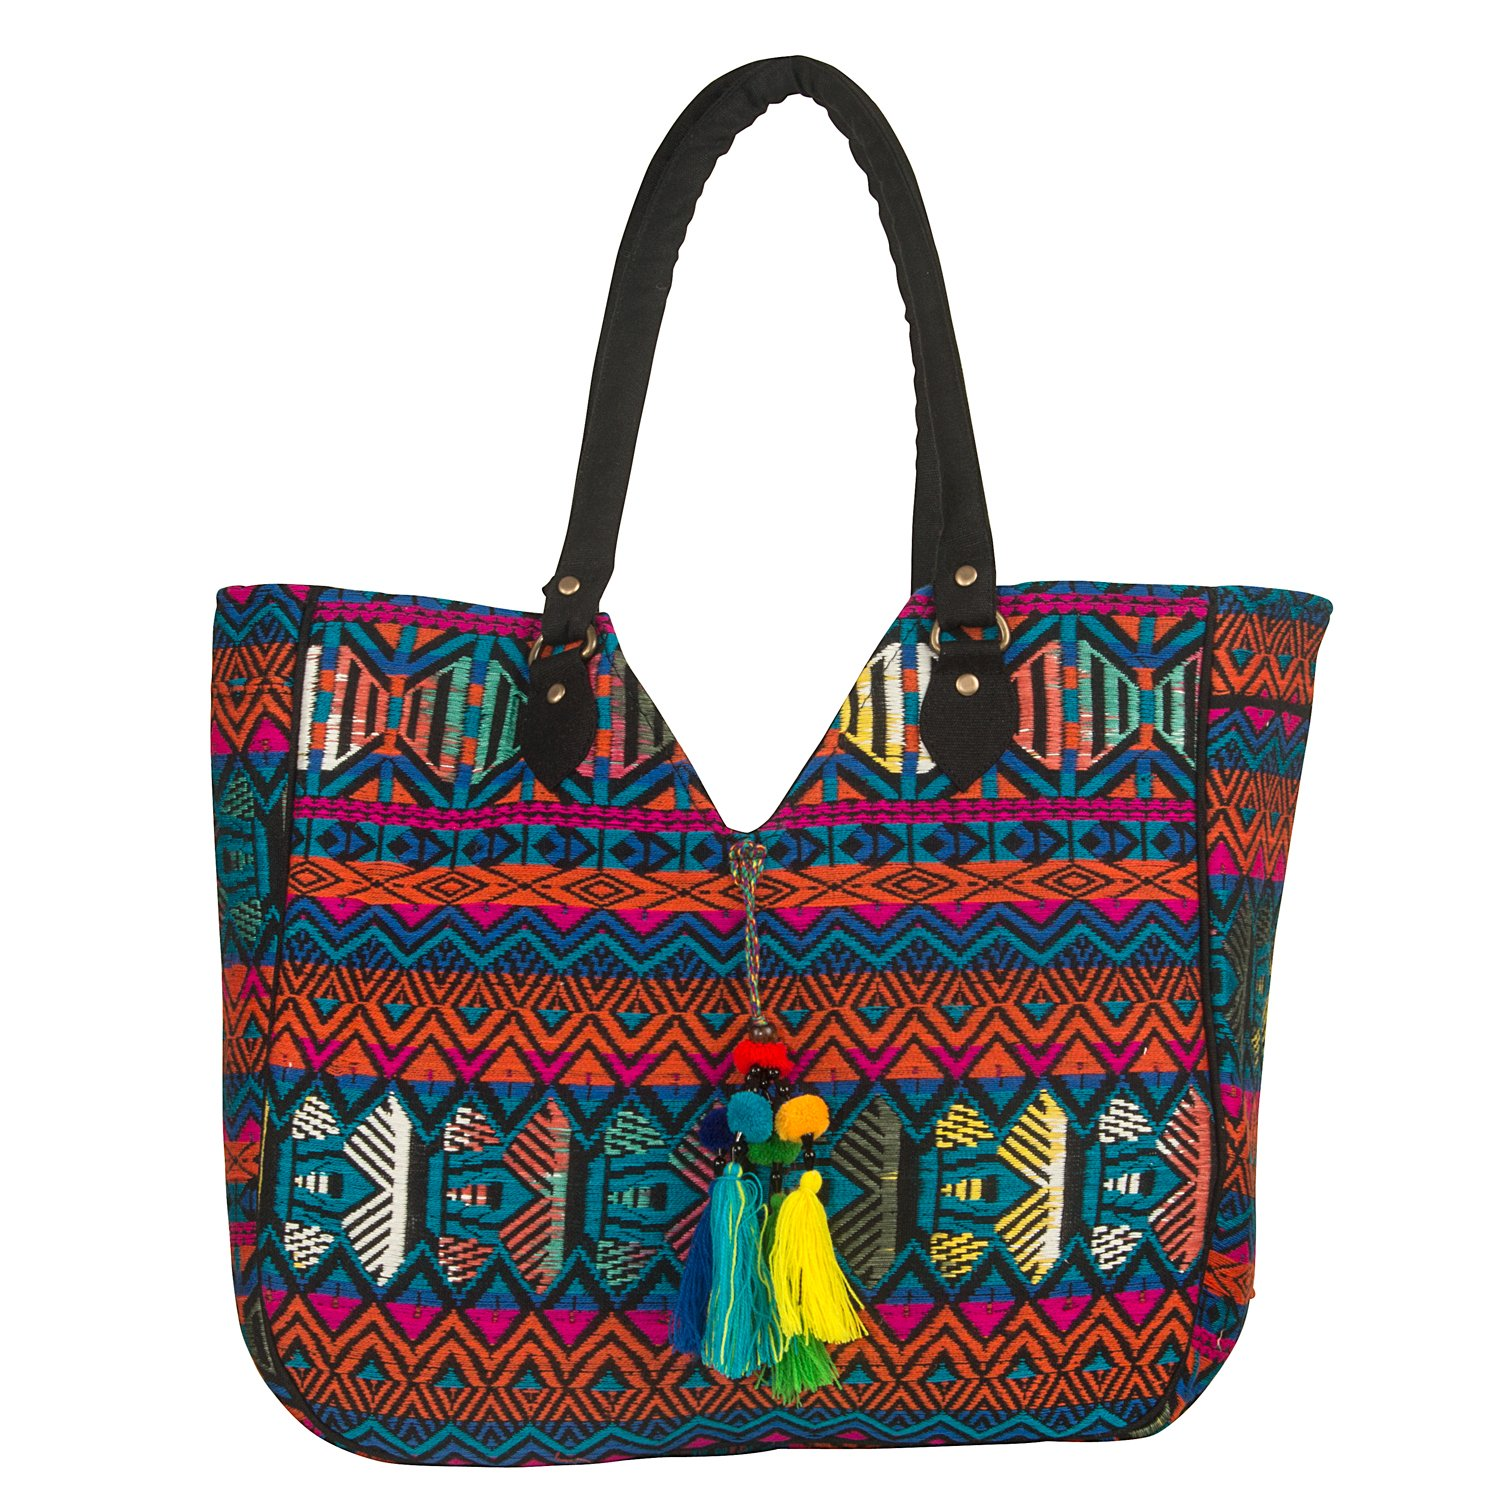 Tribe-Azure-Woven-Shoulder-Bag-Tote-Women-Purse-Summer-Spring-Beach-School-Laptop-Roomy-Casual-Everyday